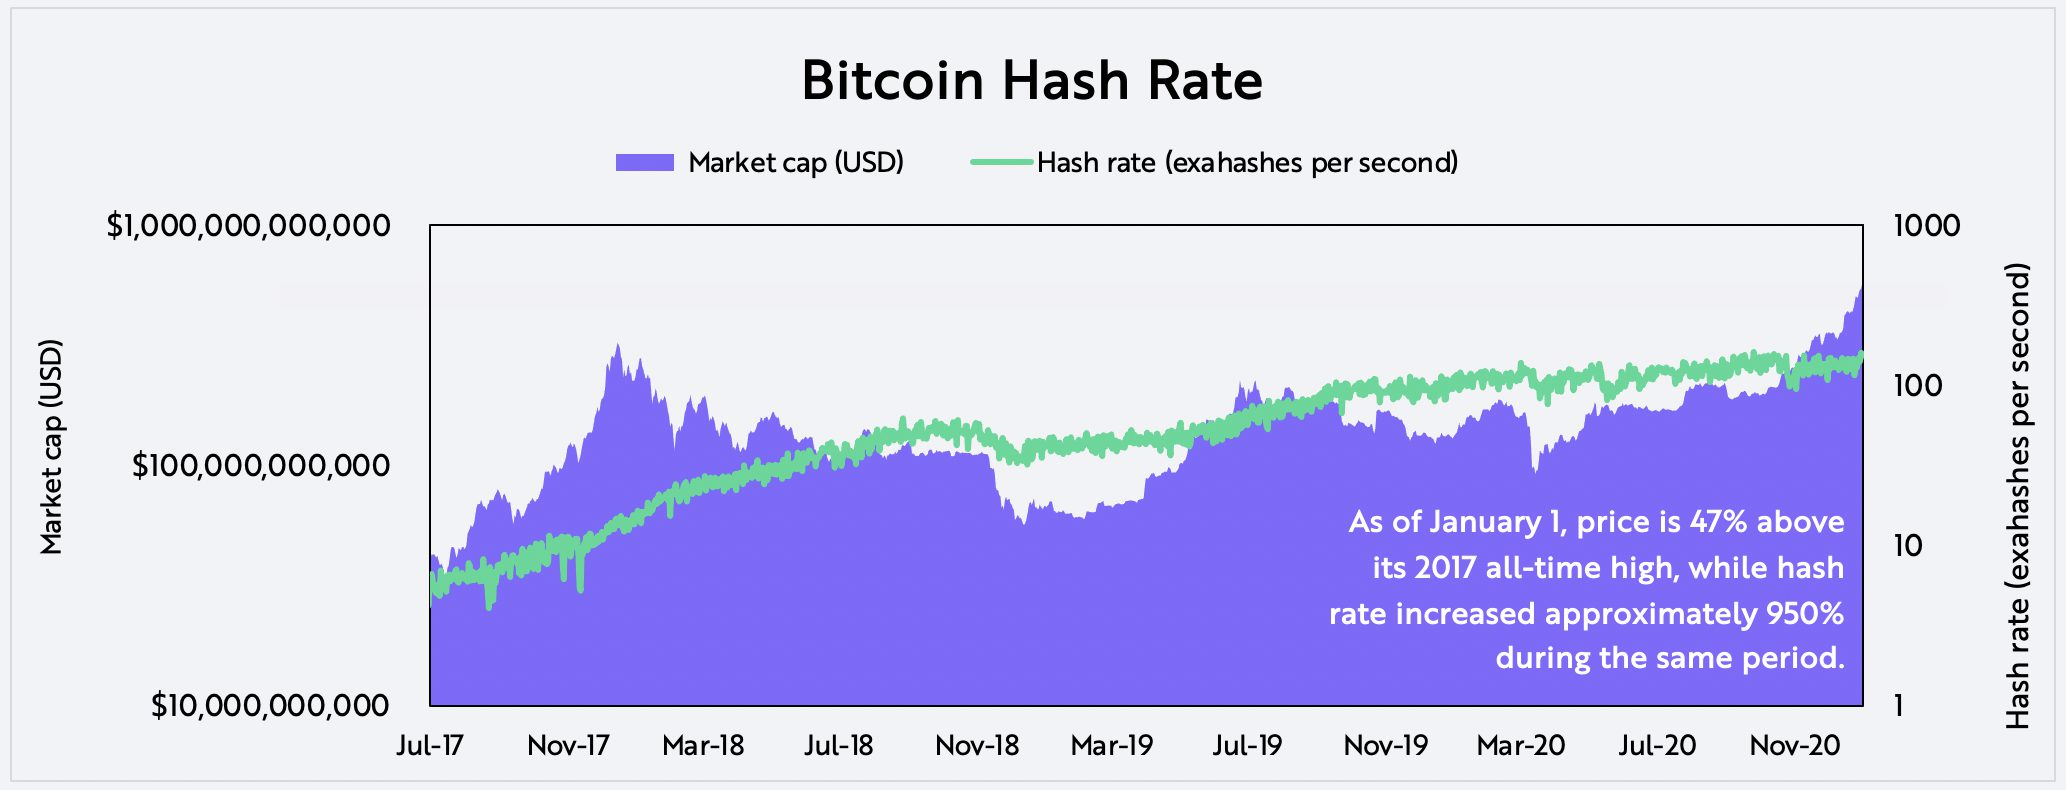 Evaluating Bitcoin Hash Rate on-chain data